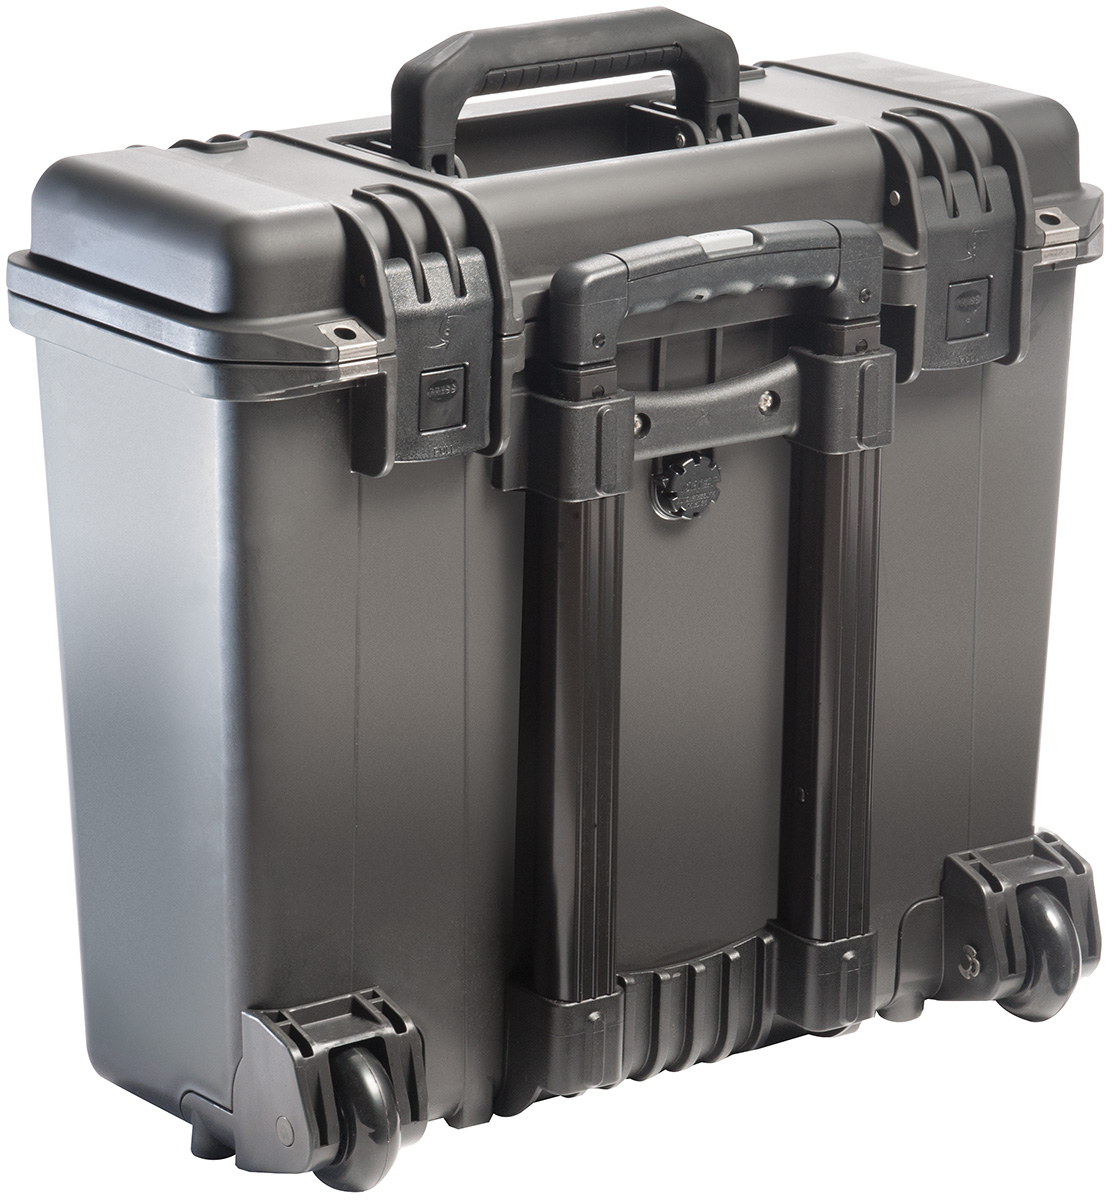 pelican peli products iM2435 hard rolling travel document case